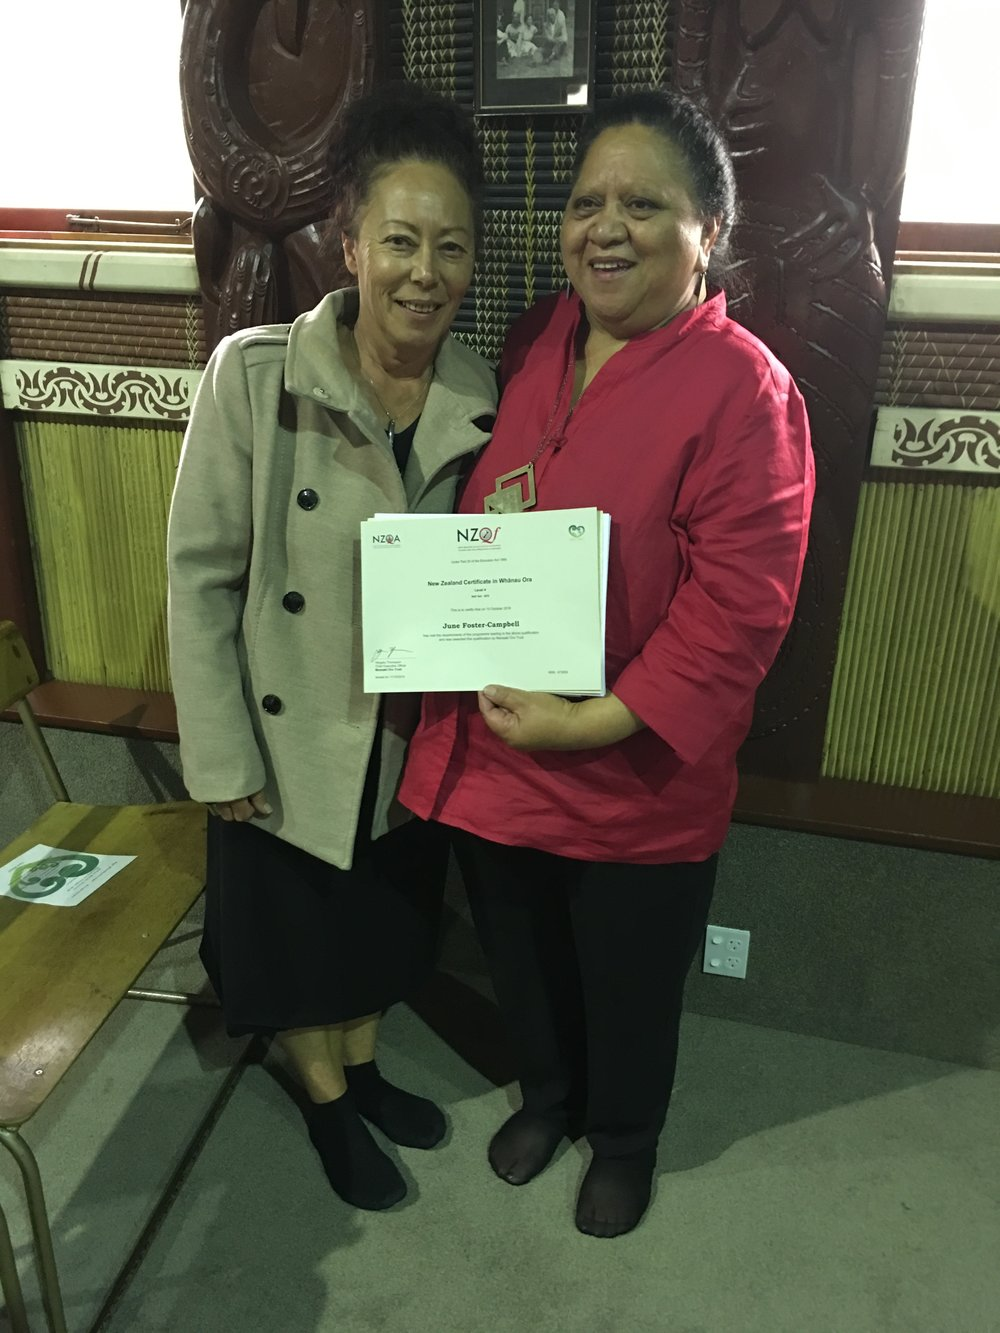 A beautiful moment to celebrate and congratulate June Foster-Campbell